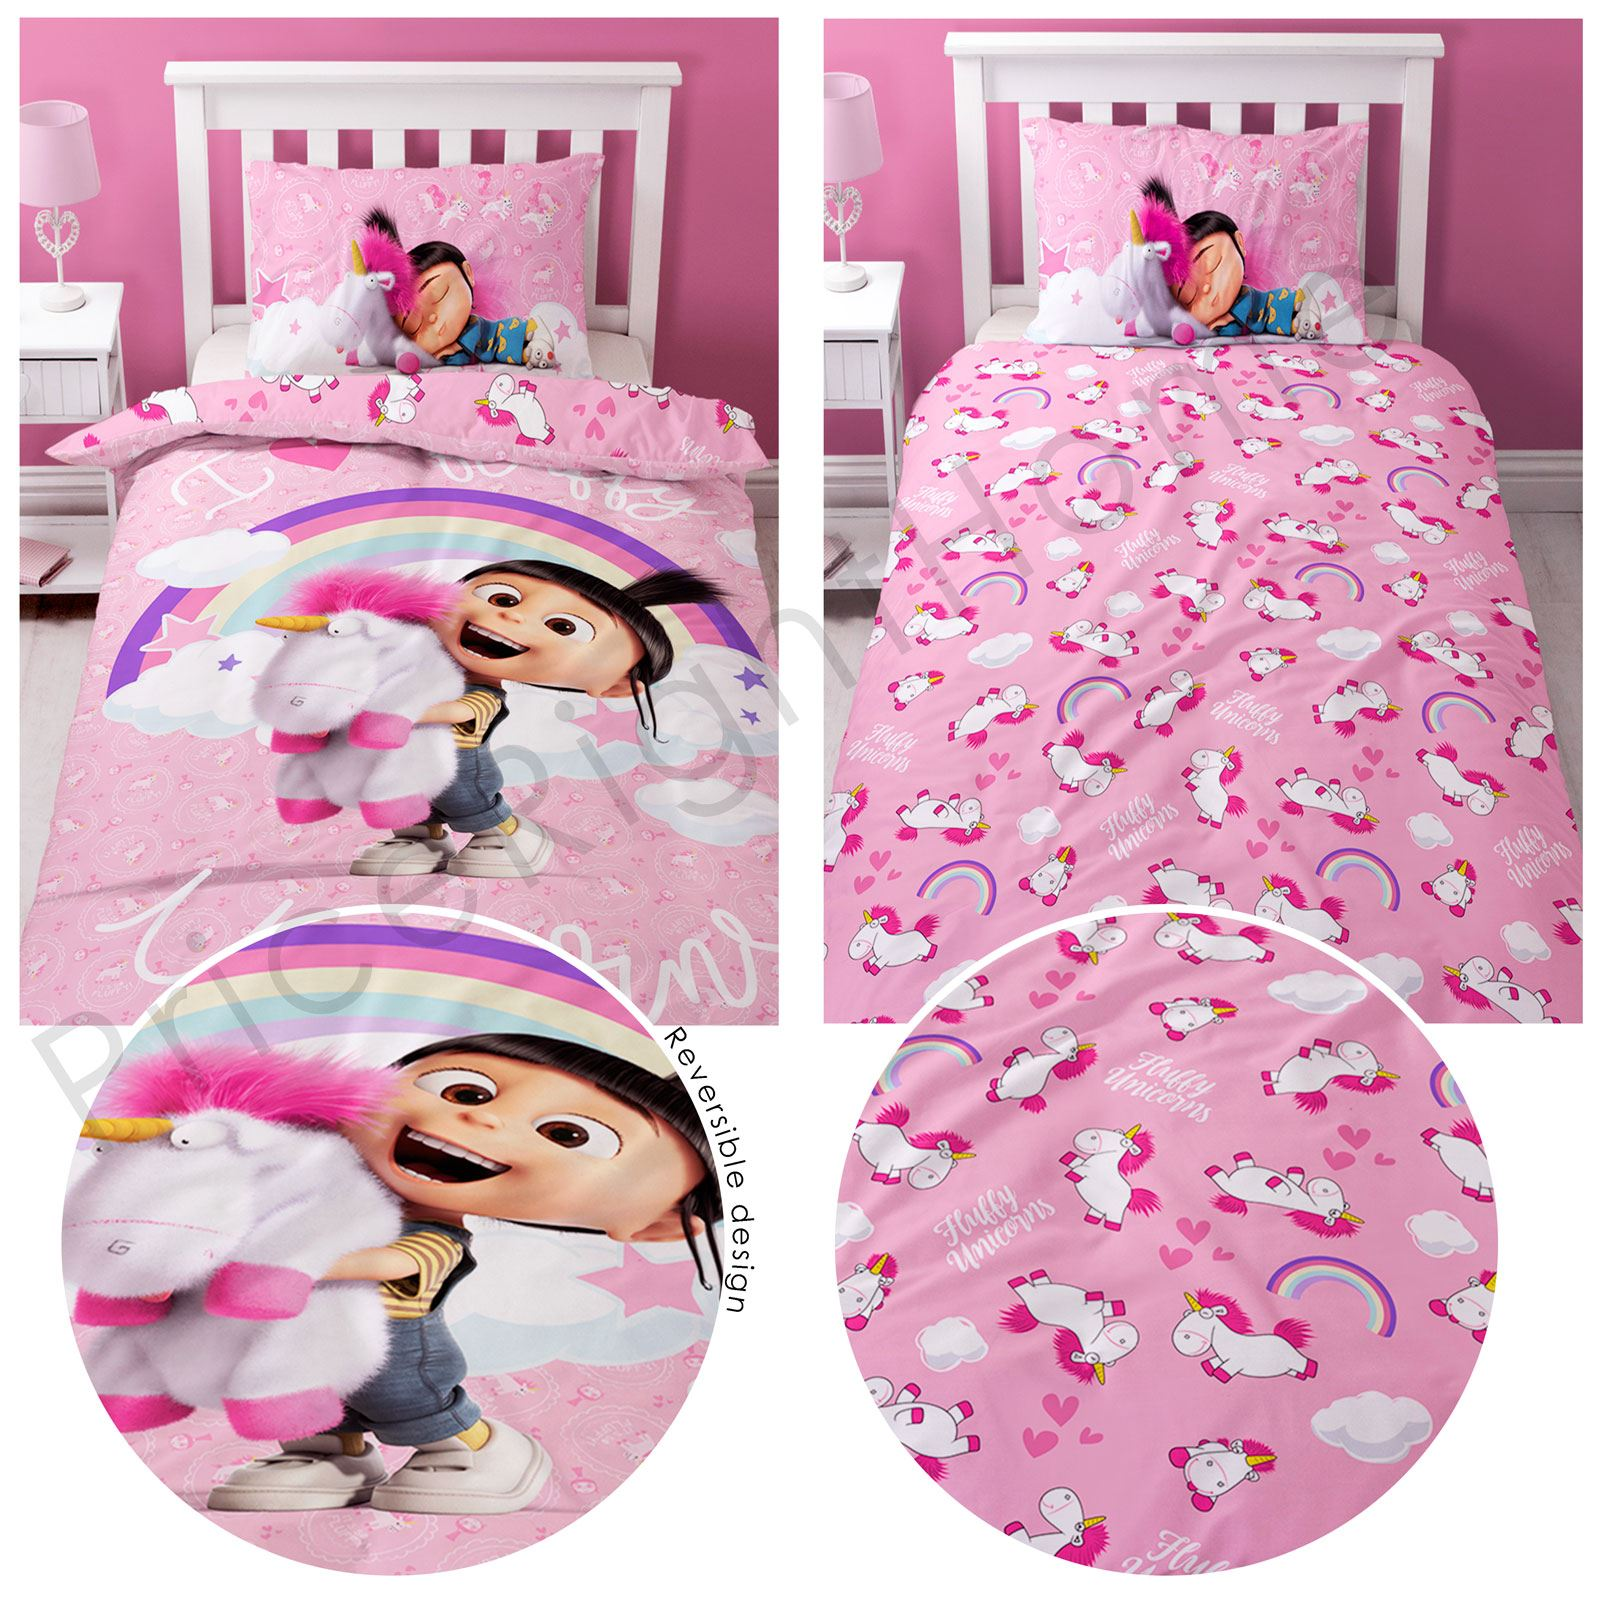 Despicable Me Fluffy Unicorn Duvet Cover Set Kids